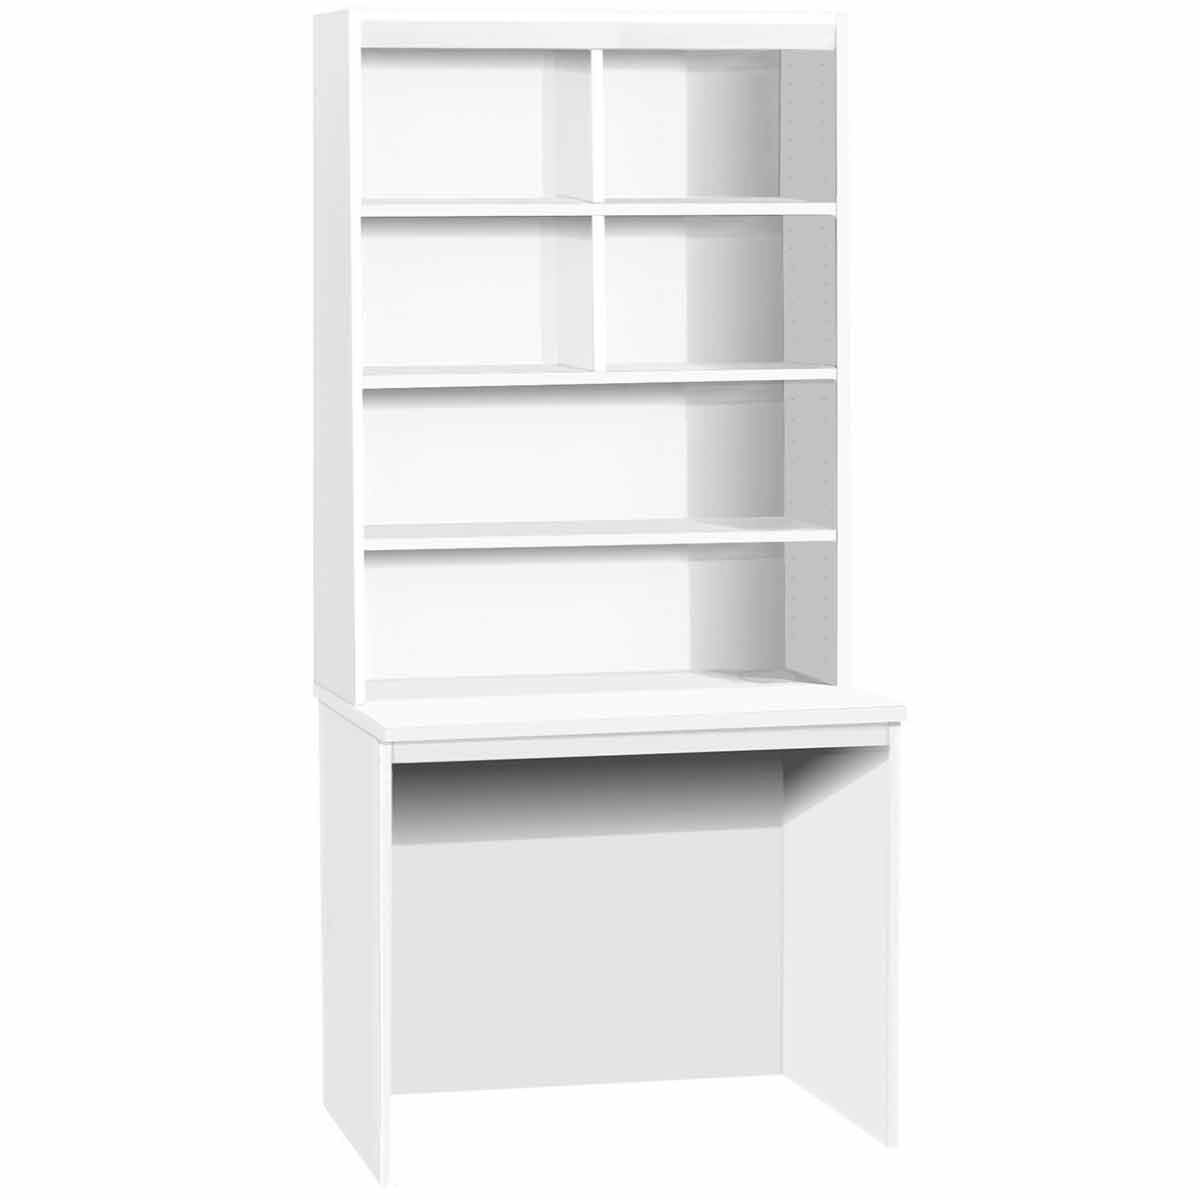 R White Medium Desk with OSF Hutch 60mm Wide White